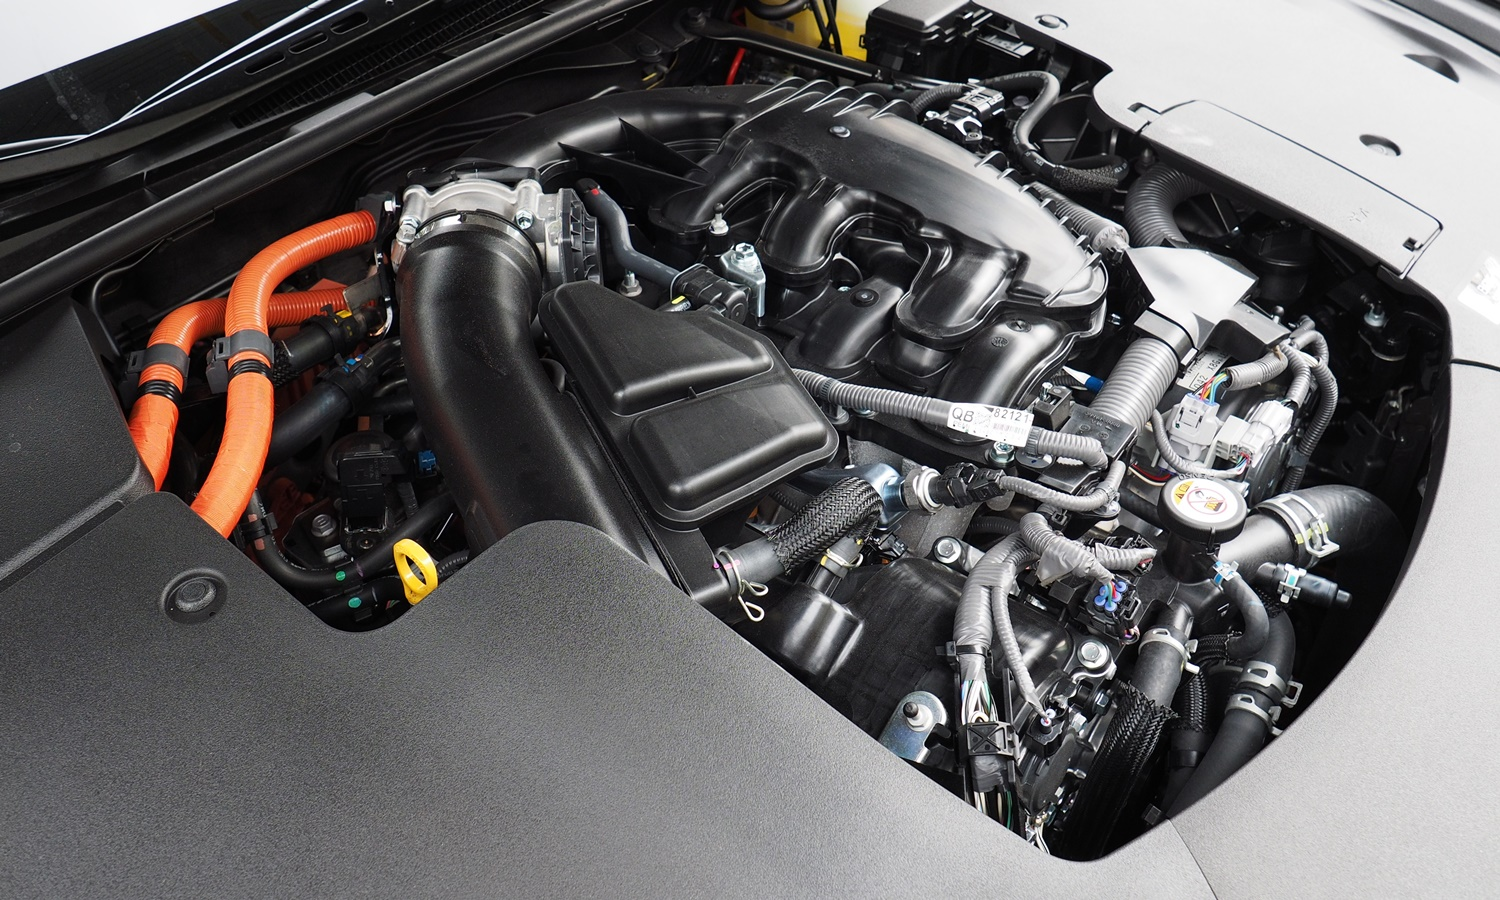 Lexus LS Photos: Lexus LS 500h engine